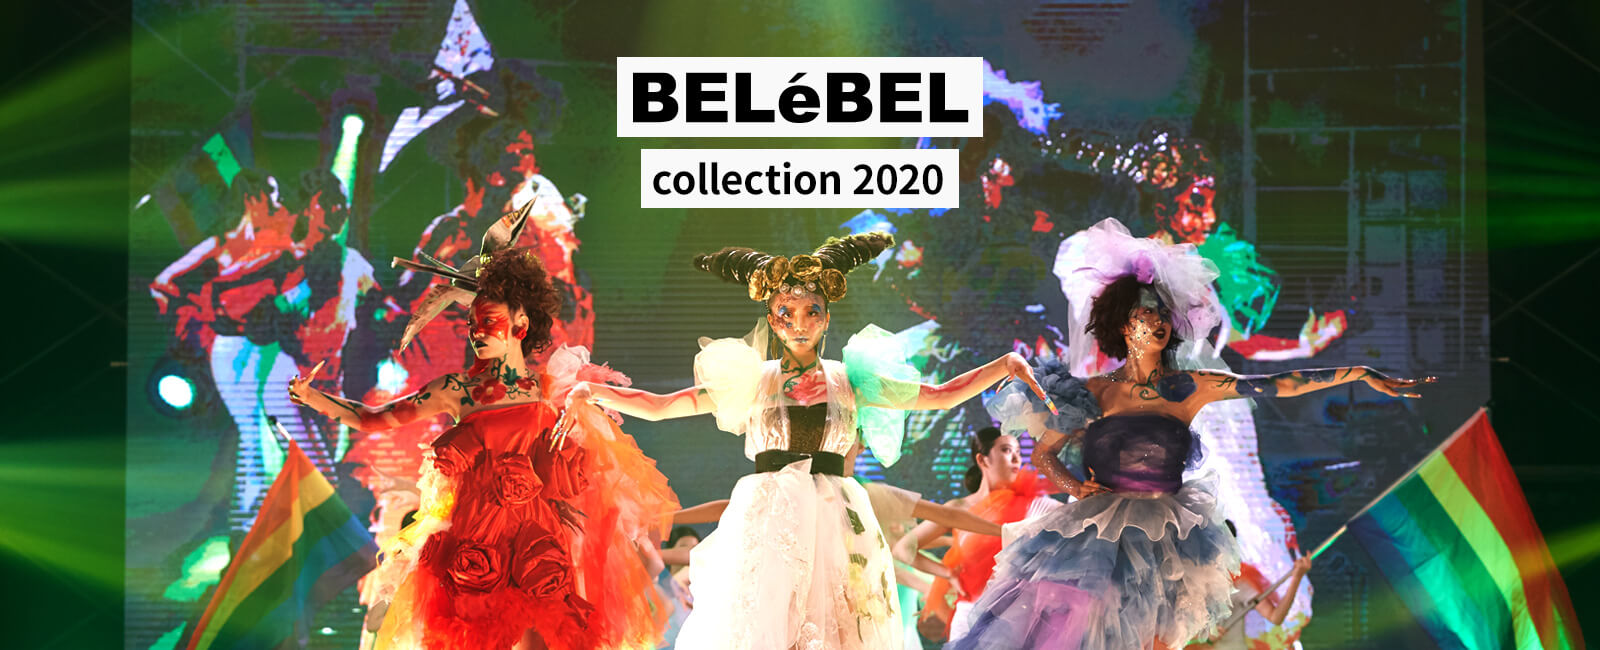 Belebel Collection2020